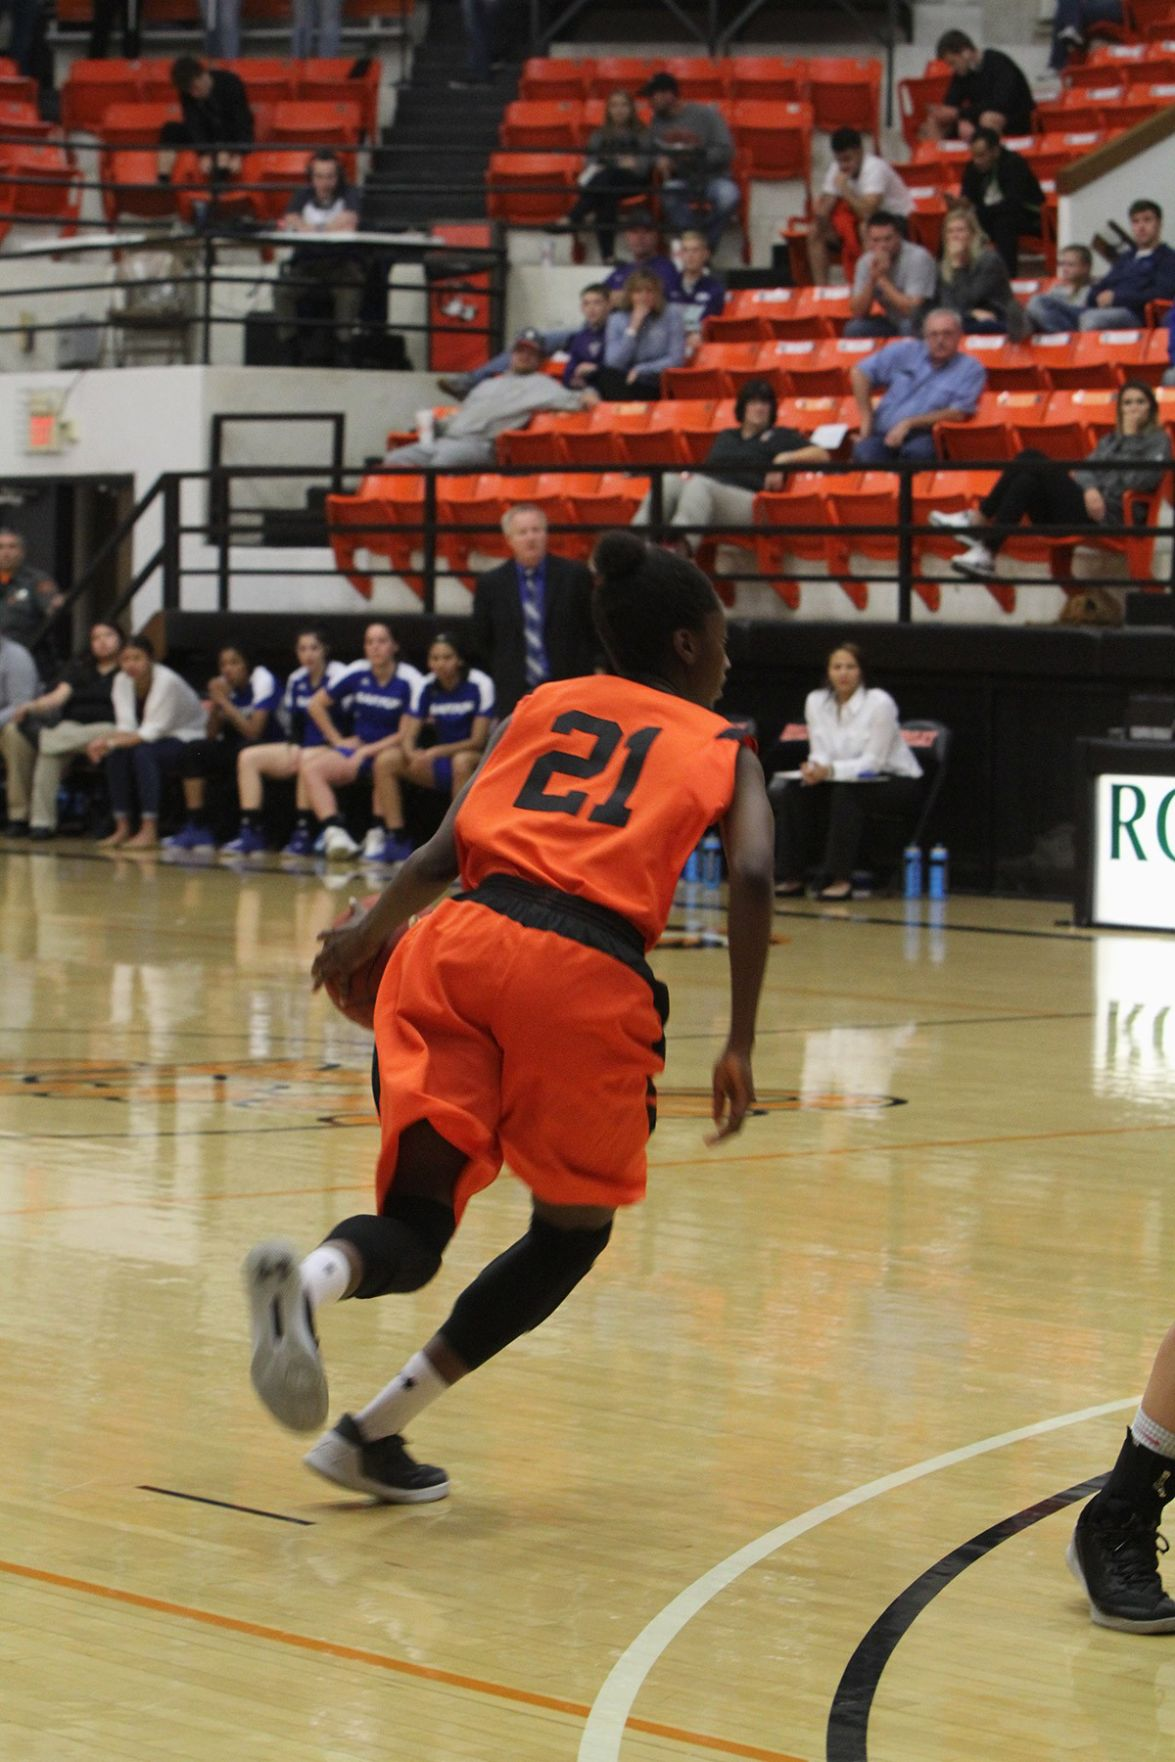 Lady Tigers roll past Barton to improve to 9-0